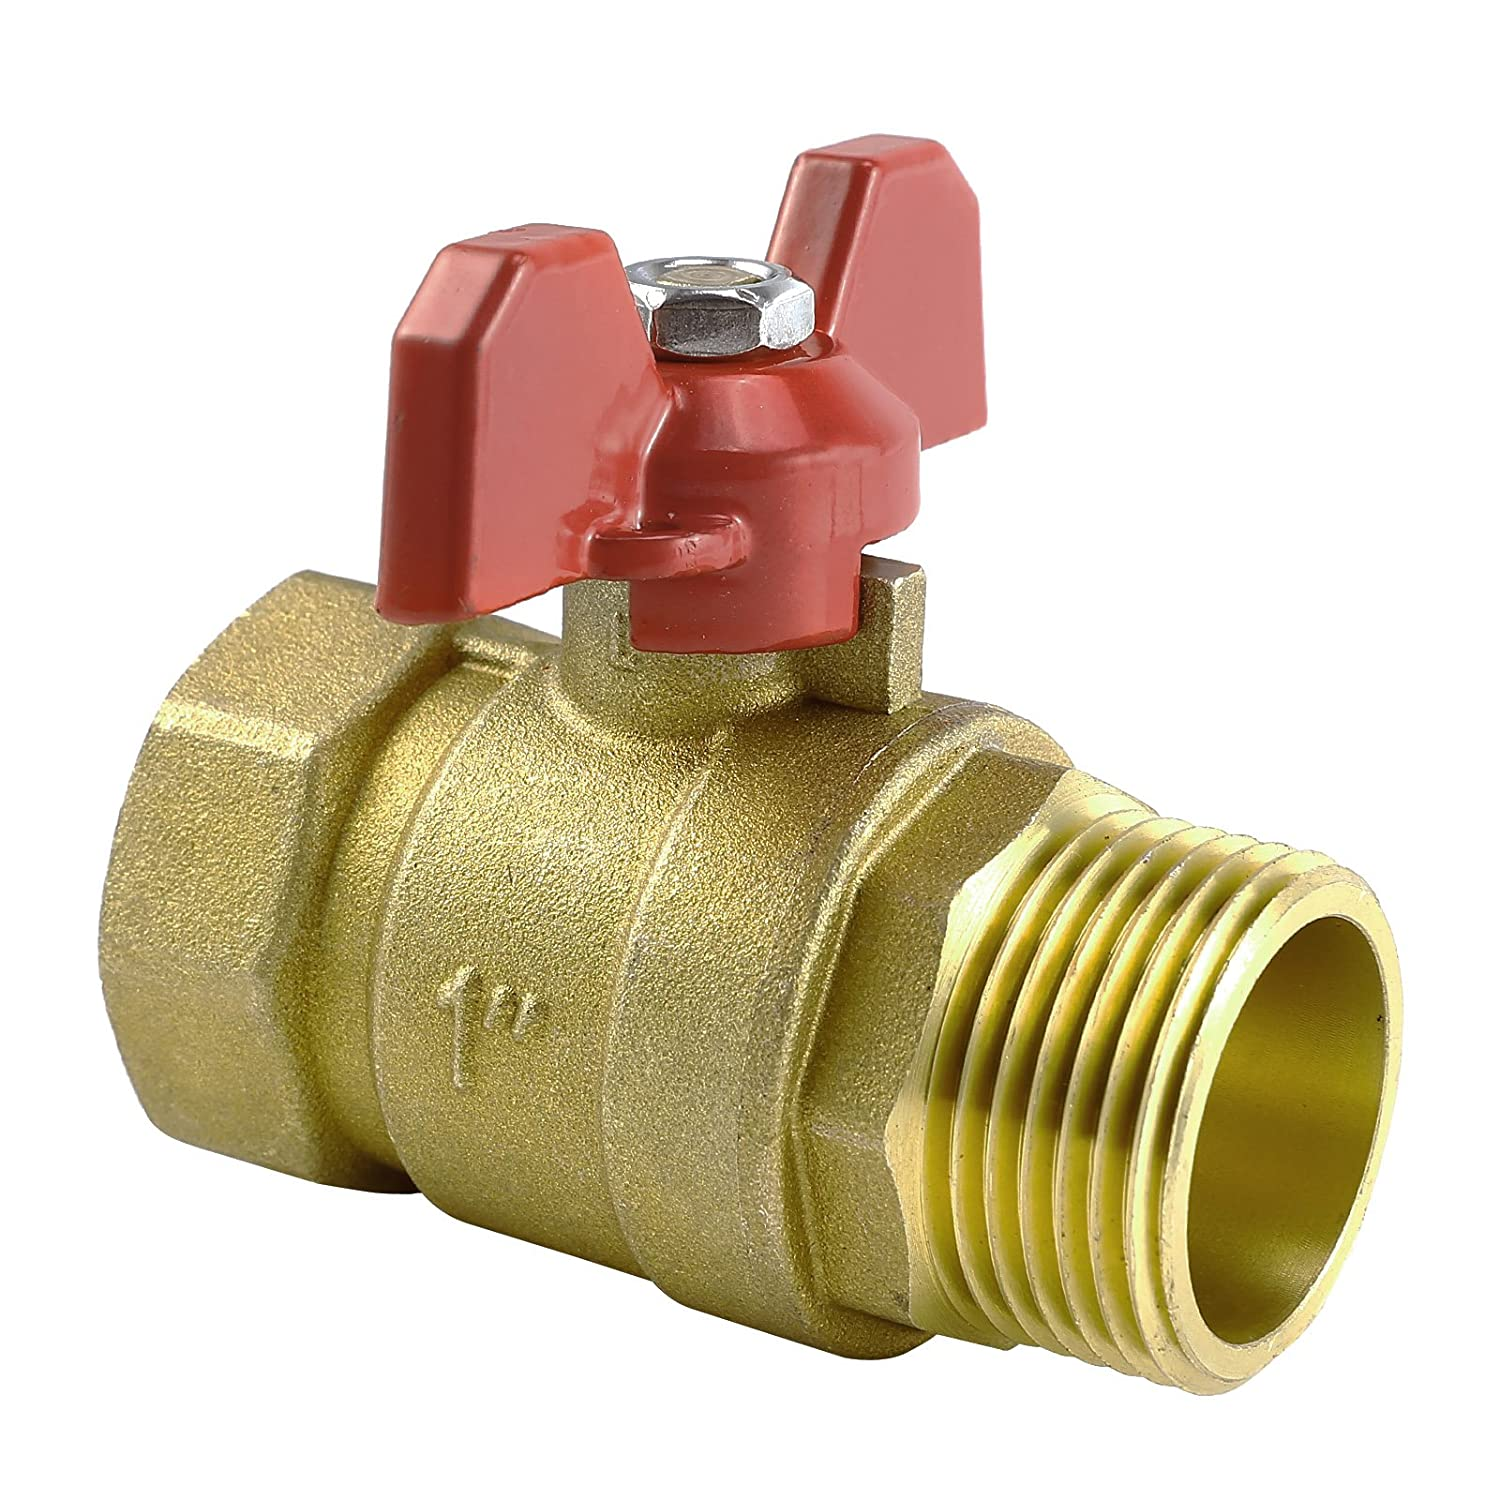 T Handle Ball Valves Red Handle BSP, T Lever Butterfly Ball Valves (1') T Lever Butterfly Ball Valves (1) Hamimelon